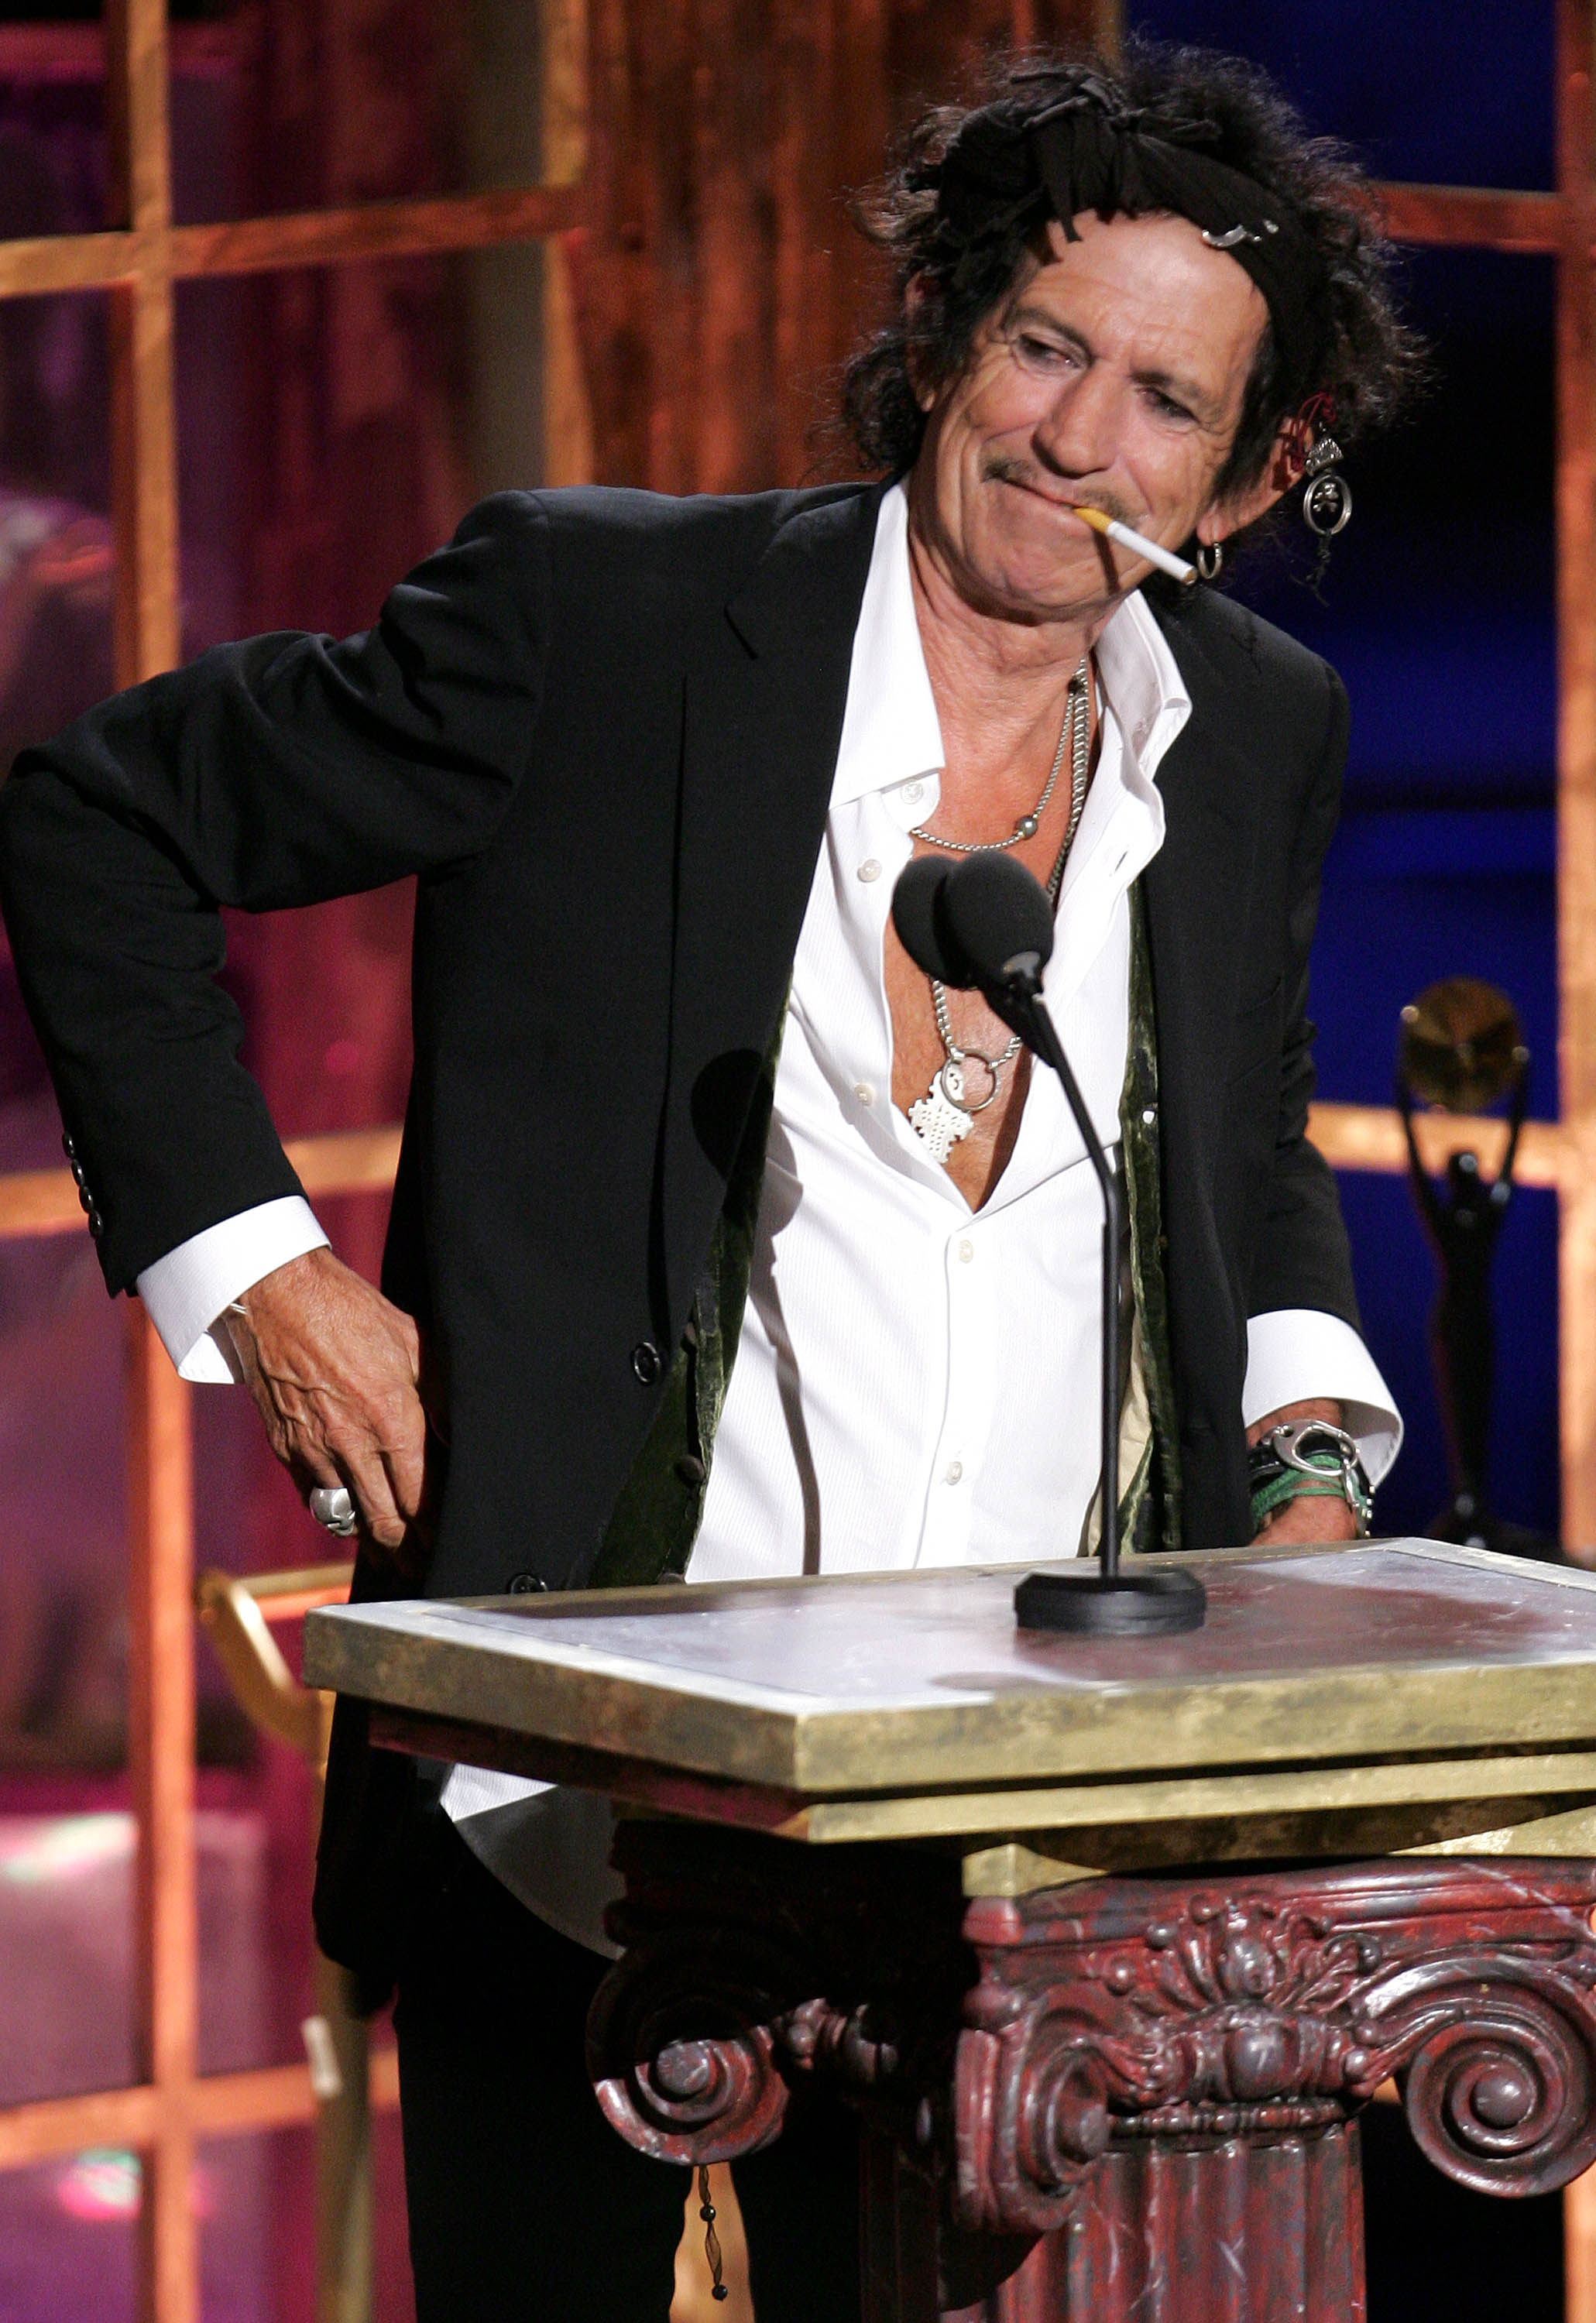 """NEW YORK - MARCH 12:  Musician Keith Richards of the Rolling Stones inducts """"The Ronettes"""" into the 22nd annual Rock And Roll Hall Of Fame at the Waldorf Astoria Hotel March 12, 2007 in New York City.  (Photo by Scott Gries/Getty Images)"""